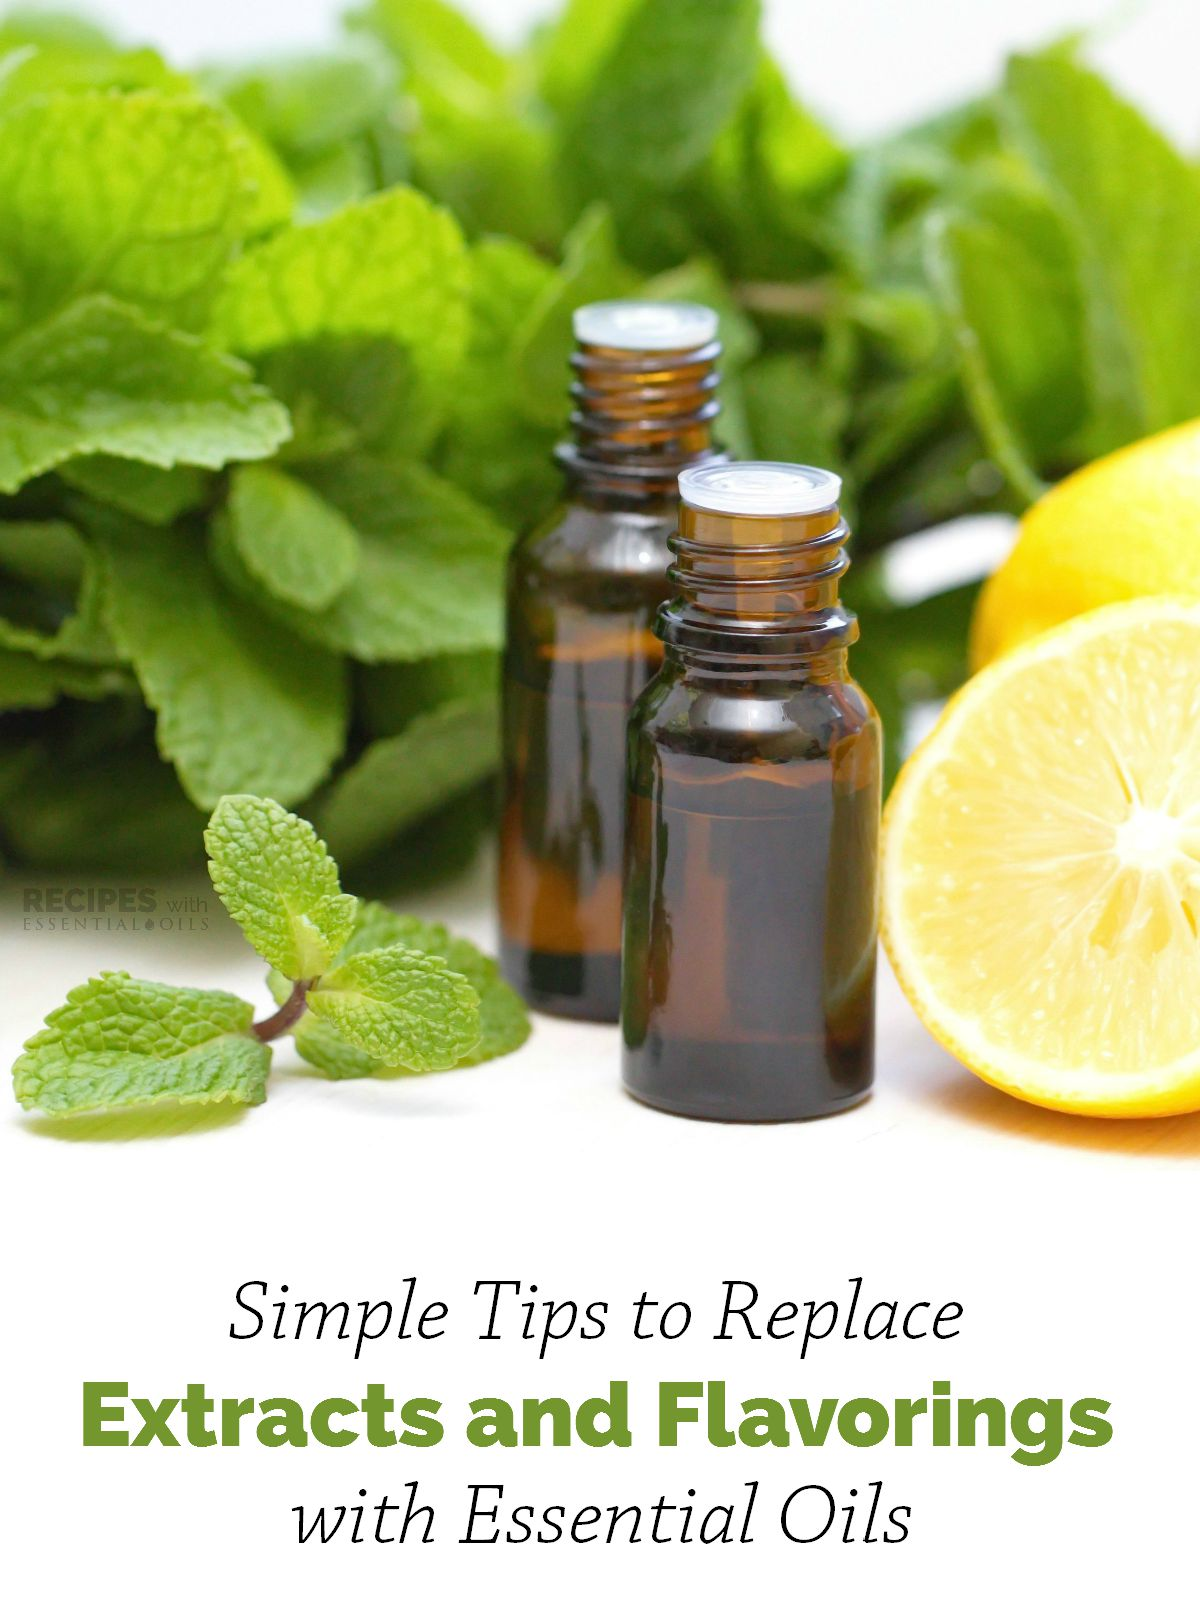 How do you replace extracts and flavorings with essential oils simple tips to replace extracts and flavorings with essential oils recipeswithessentialoils forumfinder Choice Image